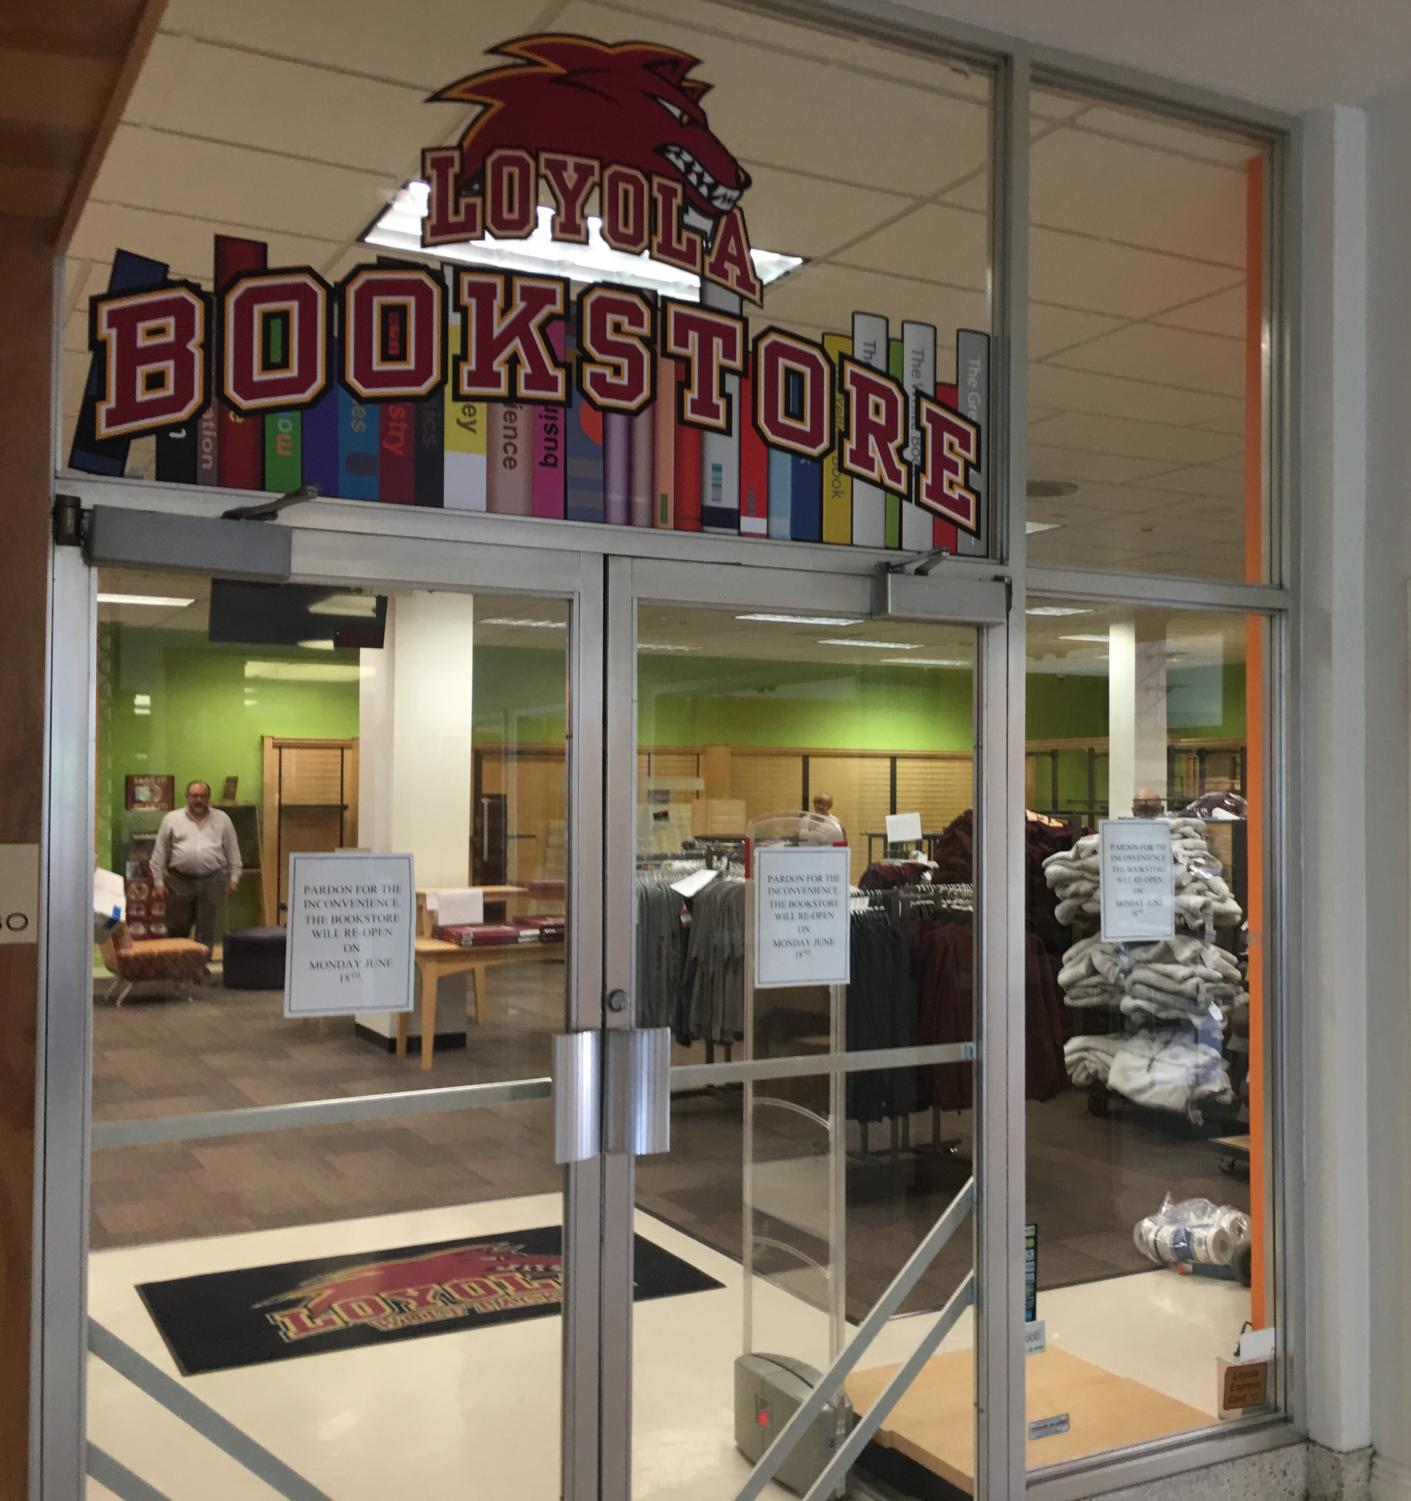 The Loyola bookstore is under renovation before they welcome Barns and Noble College. The new vendors will be occupying the space starting on June 18. Photo credit: Andres Fuentes